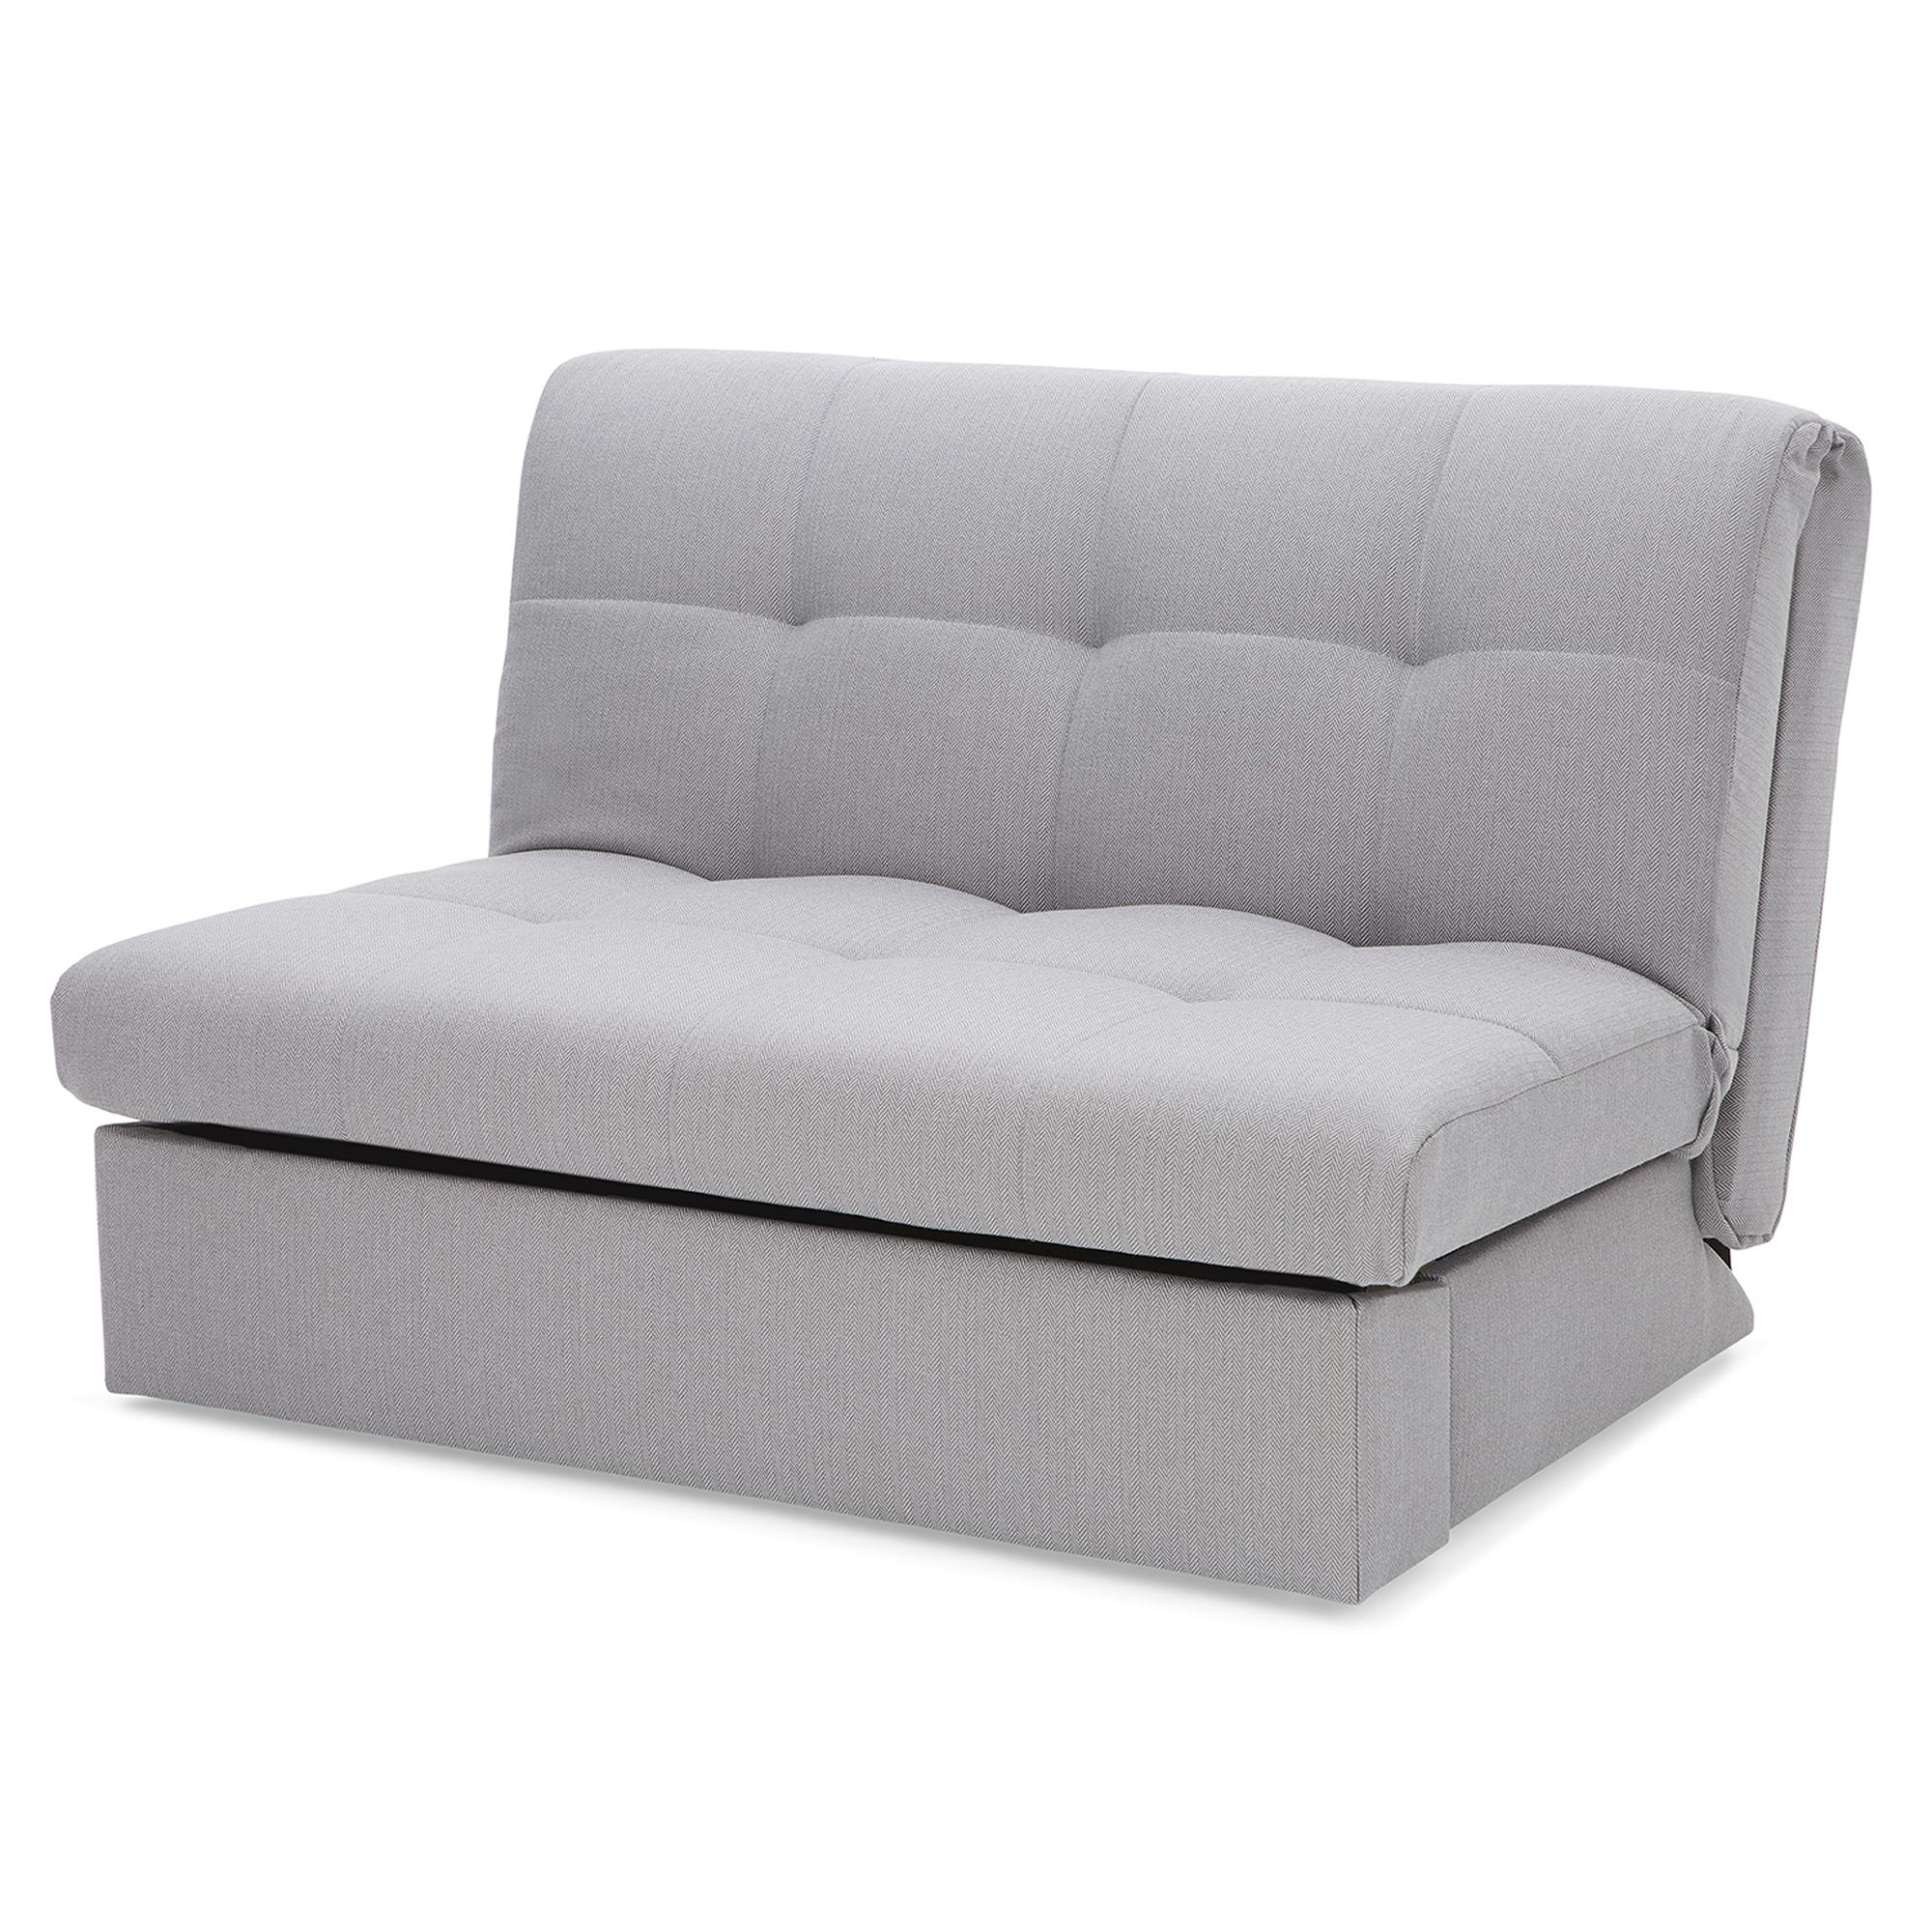 Grey Rowan Small Double Sofa Bed | Dunelm